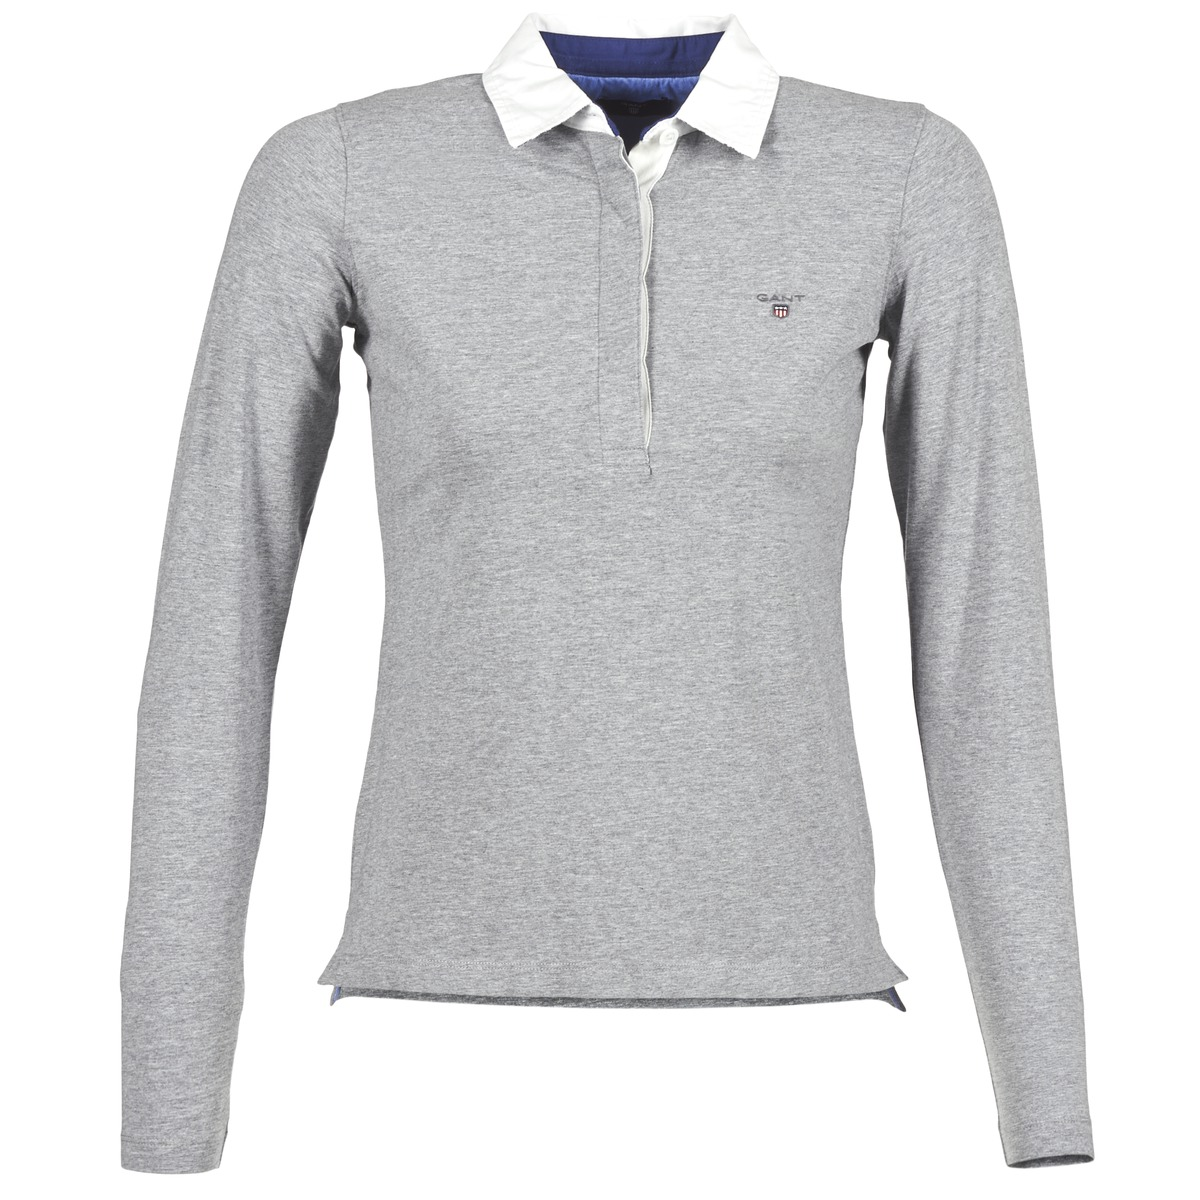 Polo maniche lunghe donna Gant SOLID JERSEY RUGGER grigio  Free Shipping  OutletScarpeOnline.it